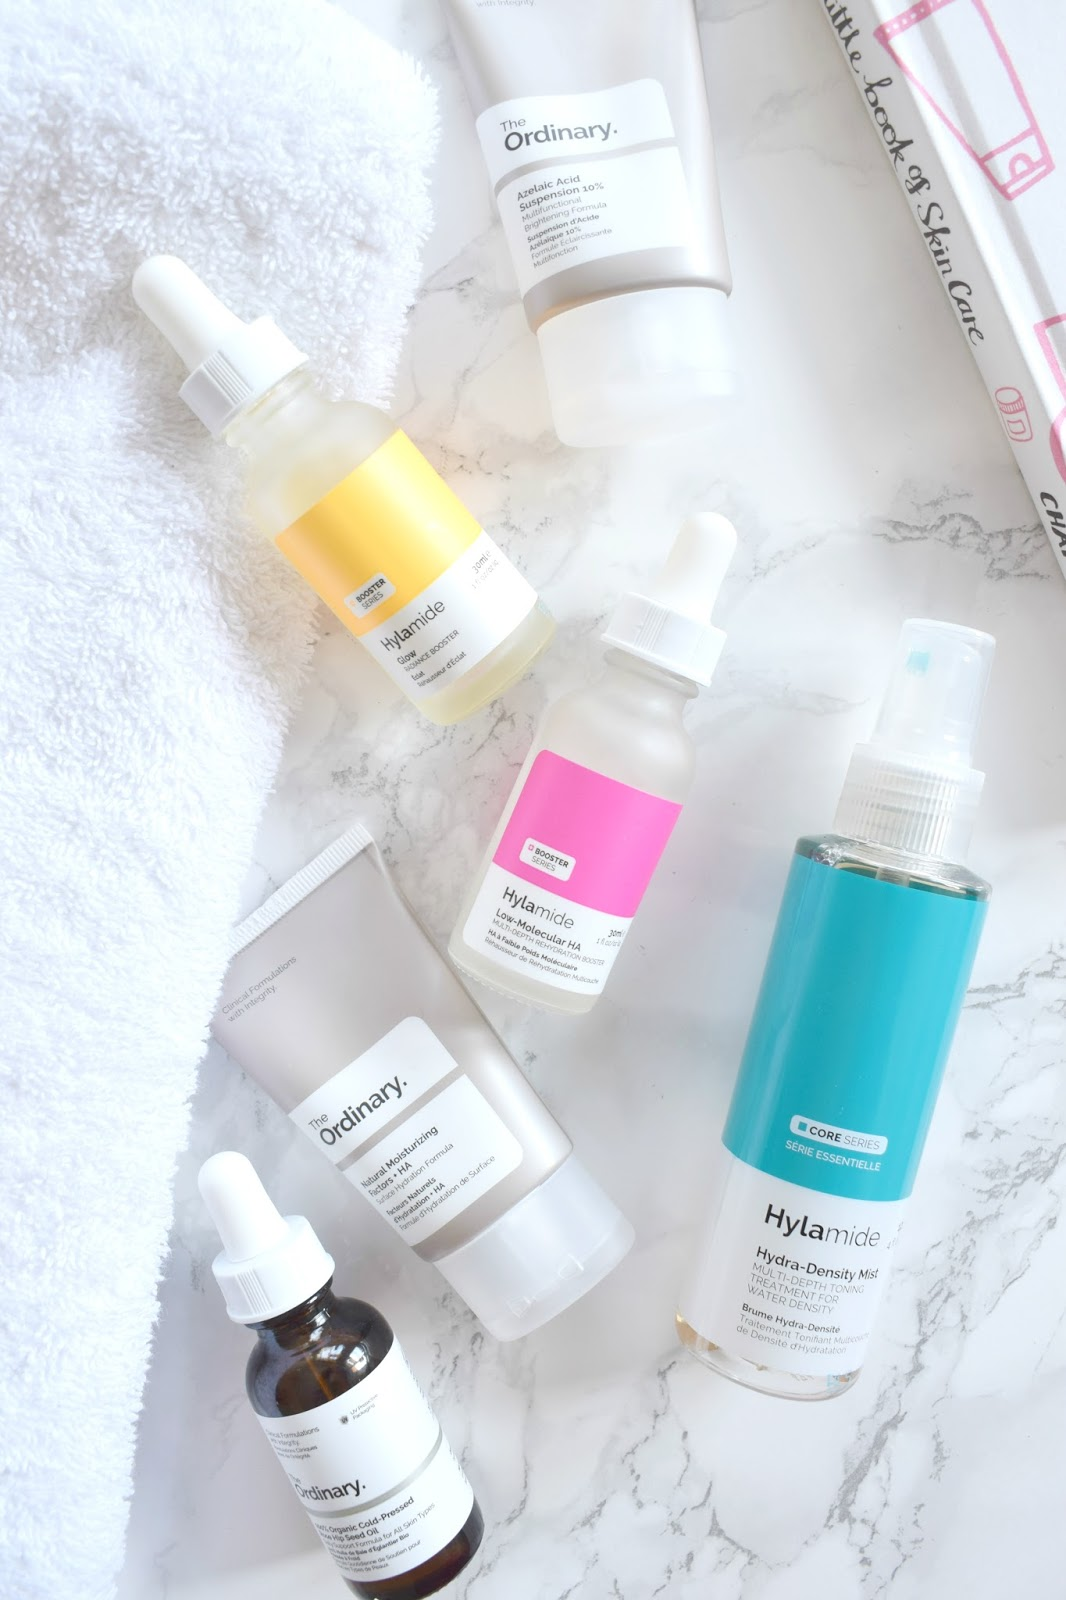 deciem/hylamide glow booster, low molecular hyaluronic acid, beautybay, boots, stockist, review month progress before after, hydra density mist, rosehip oil, cheap uk skincare, budget beauty